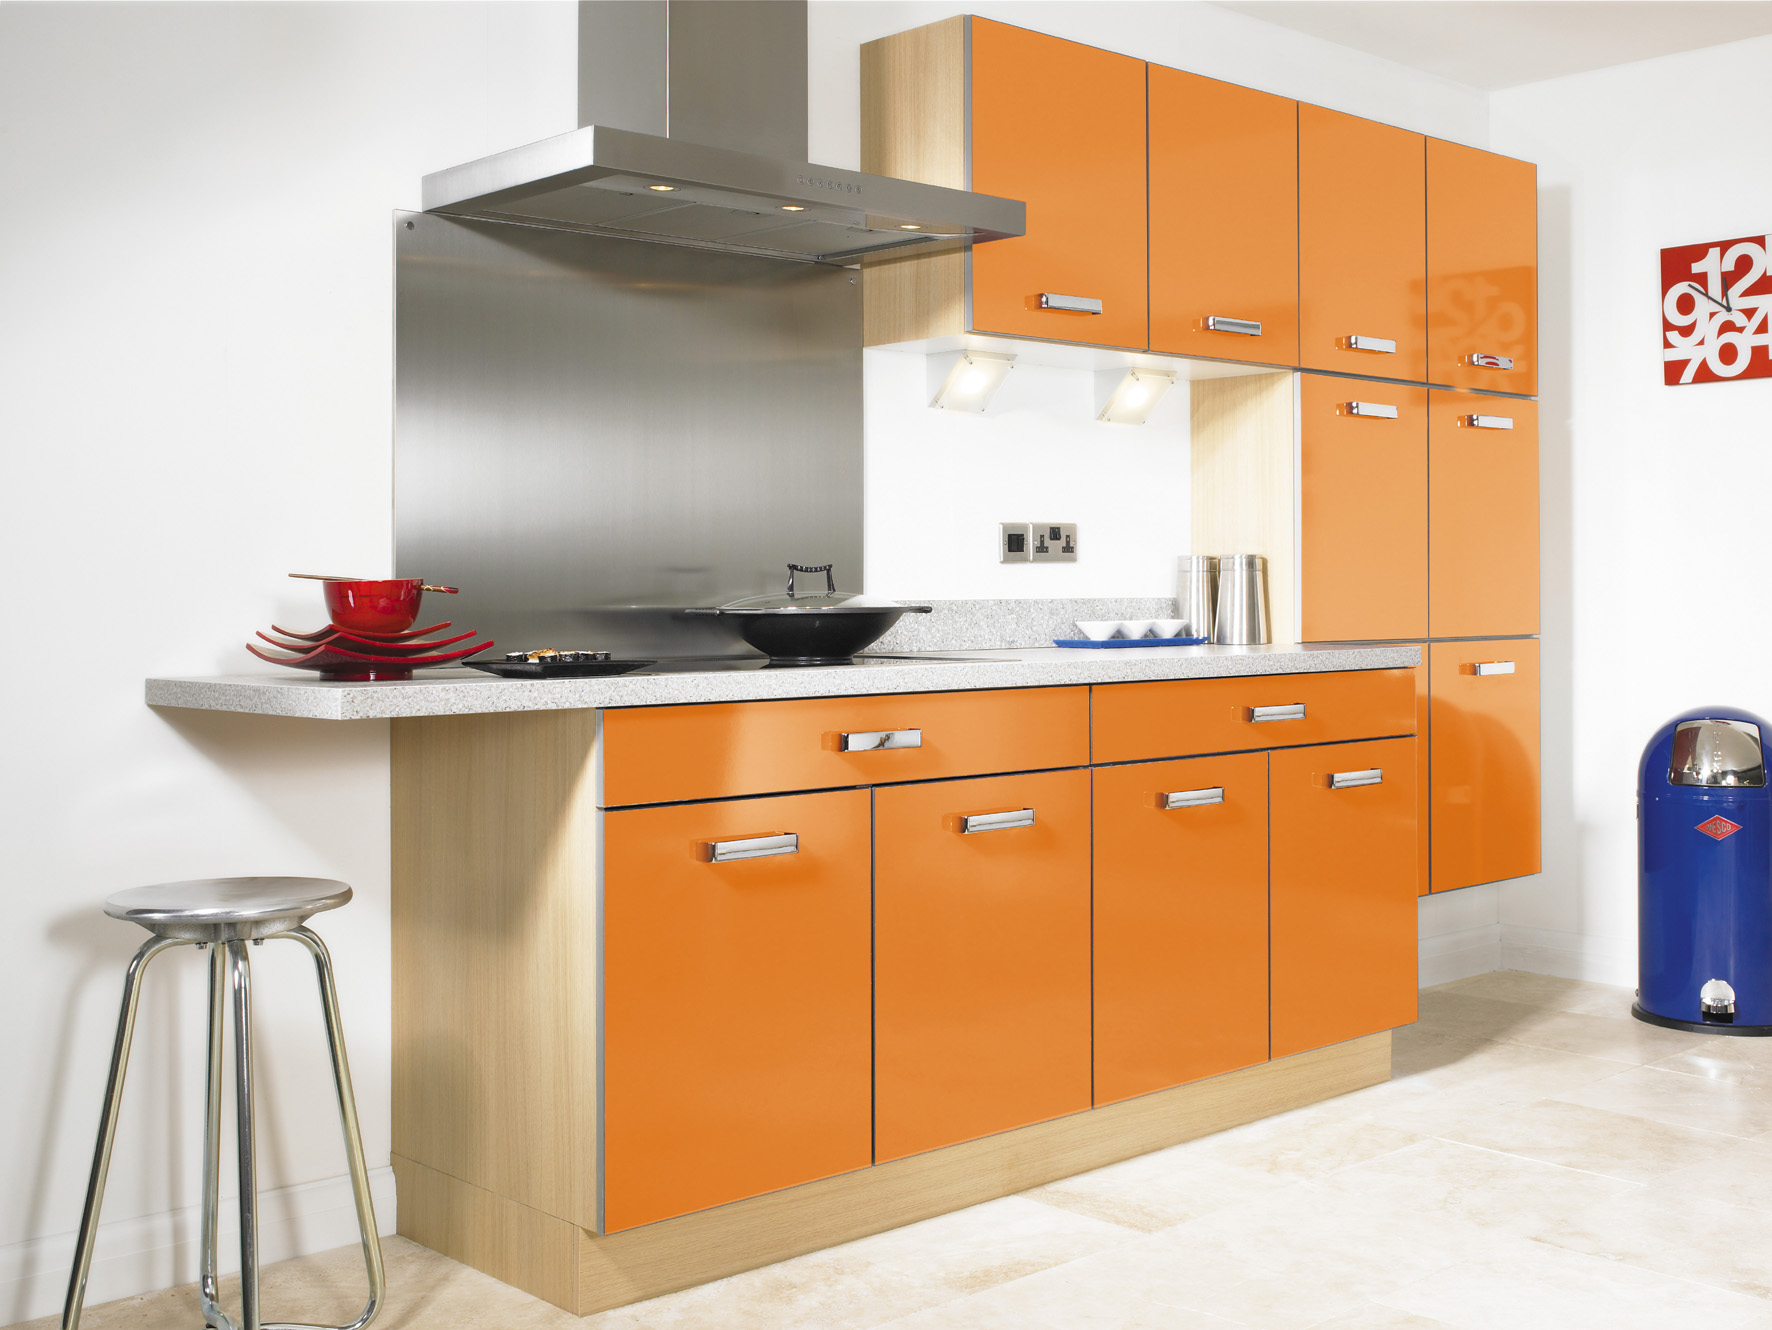 Impressive Orange Kitchen Design 1772 x 1330 · 364 kB · jpeg